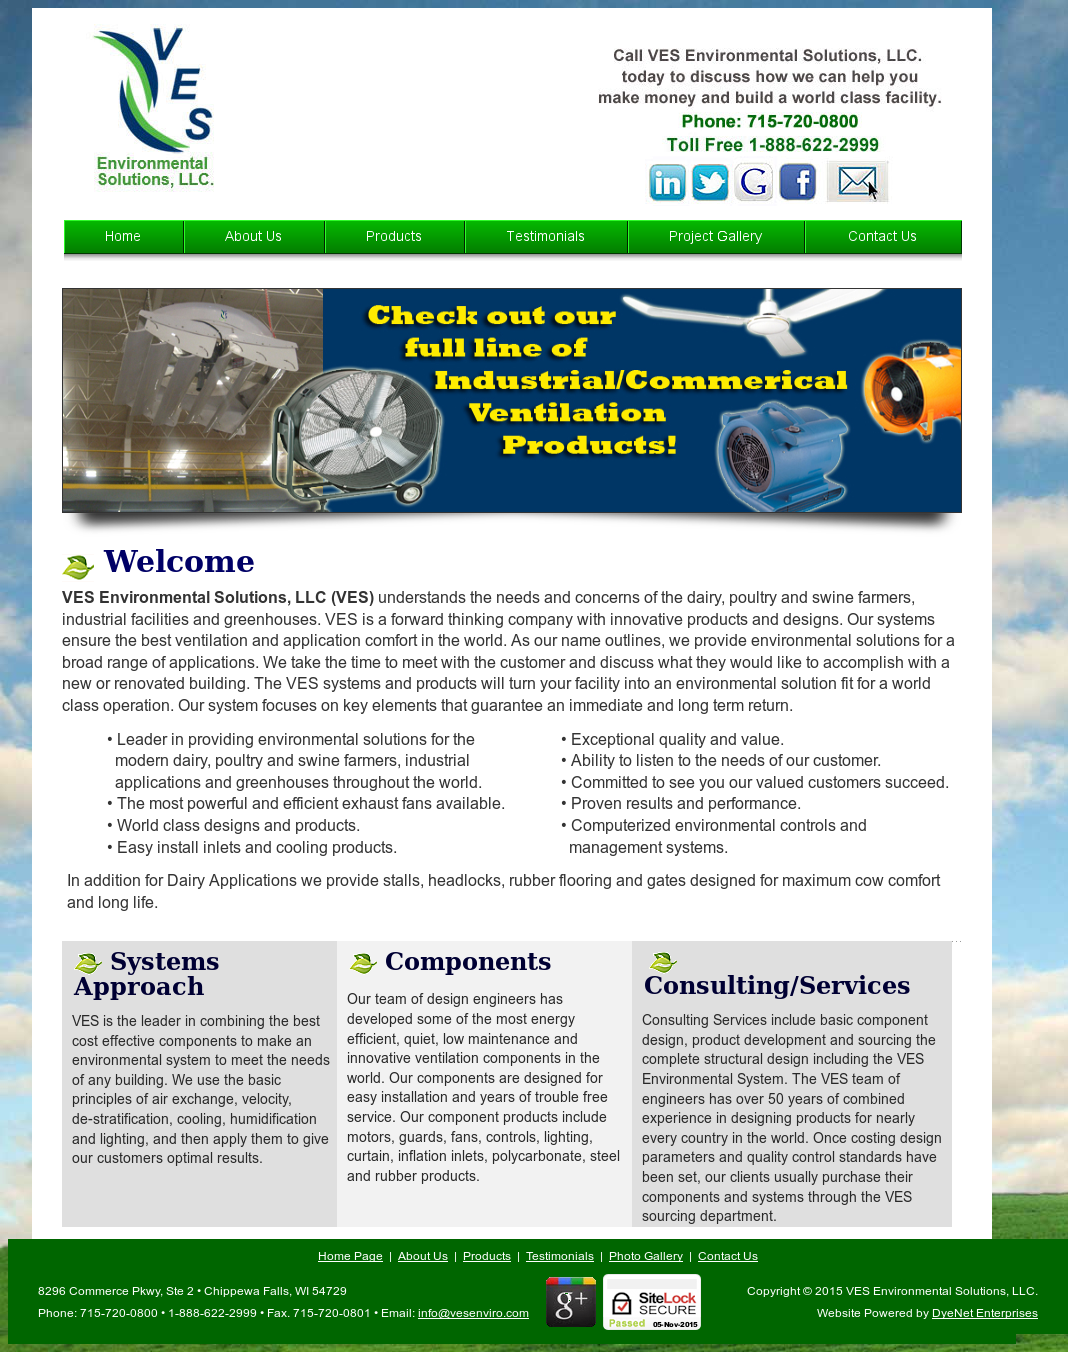 Ves Environmental Solutions Competitors, Revenue and Employees - Owler  Company Profile